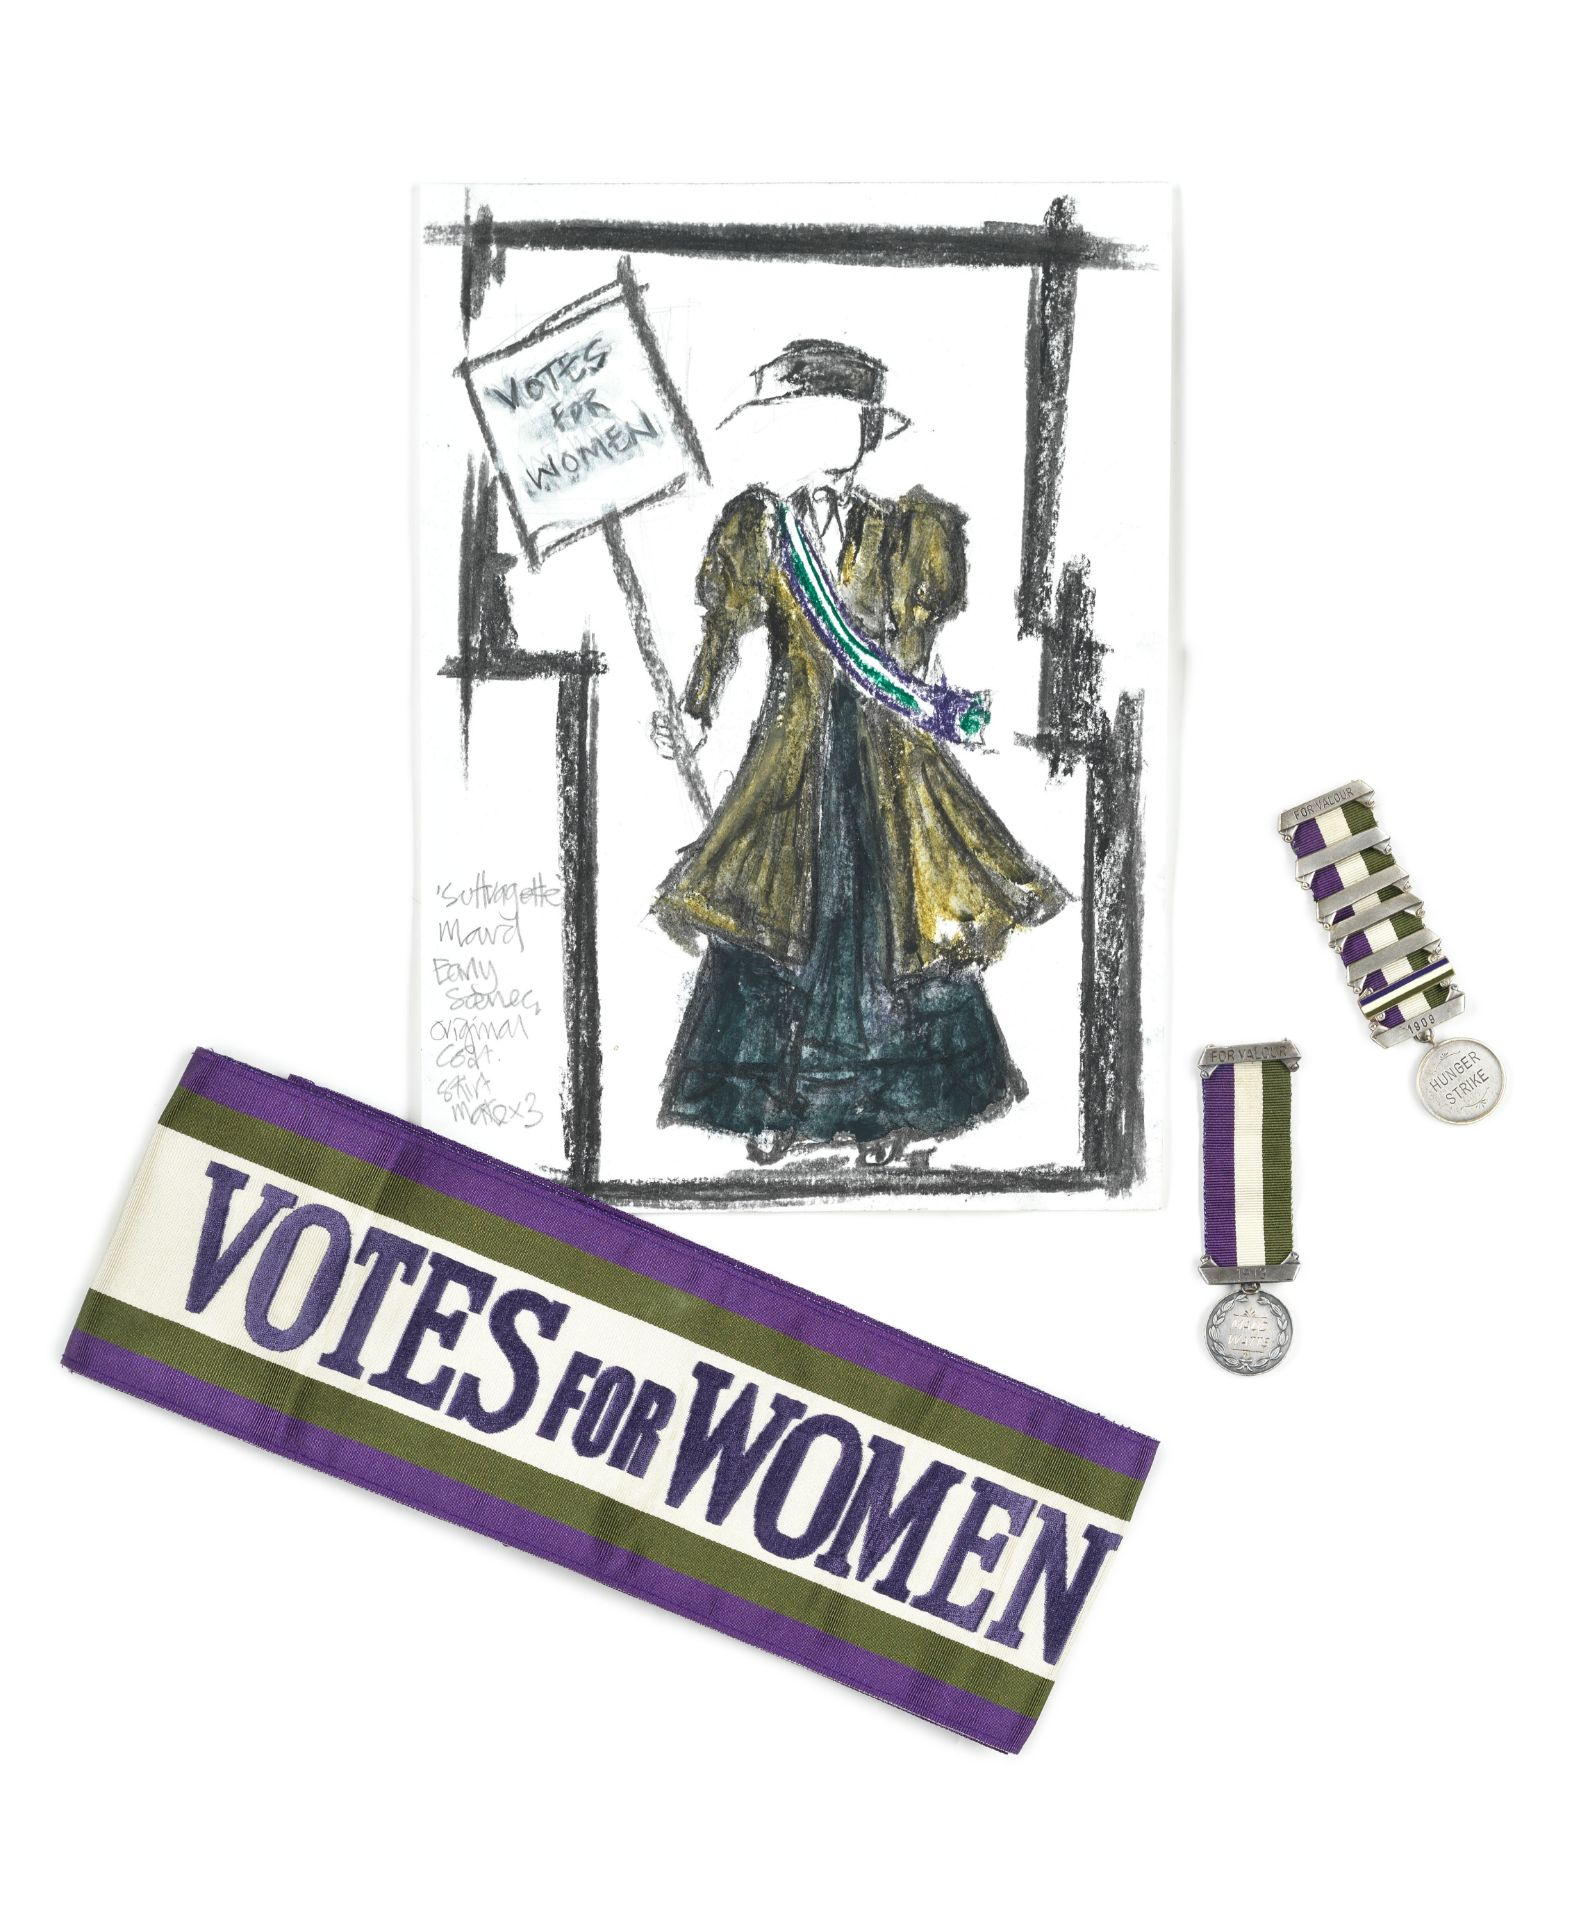 Suffragette: A sash and medal worn by Carey Mulligan for her role as 'Maud Watts', and a medal wo...